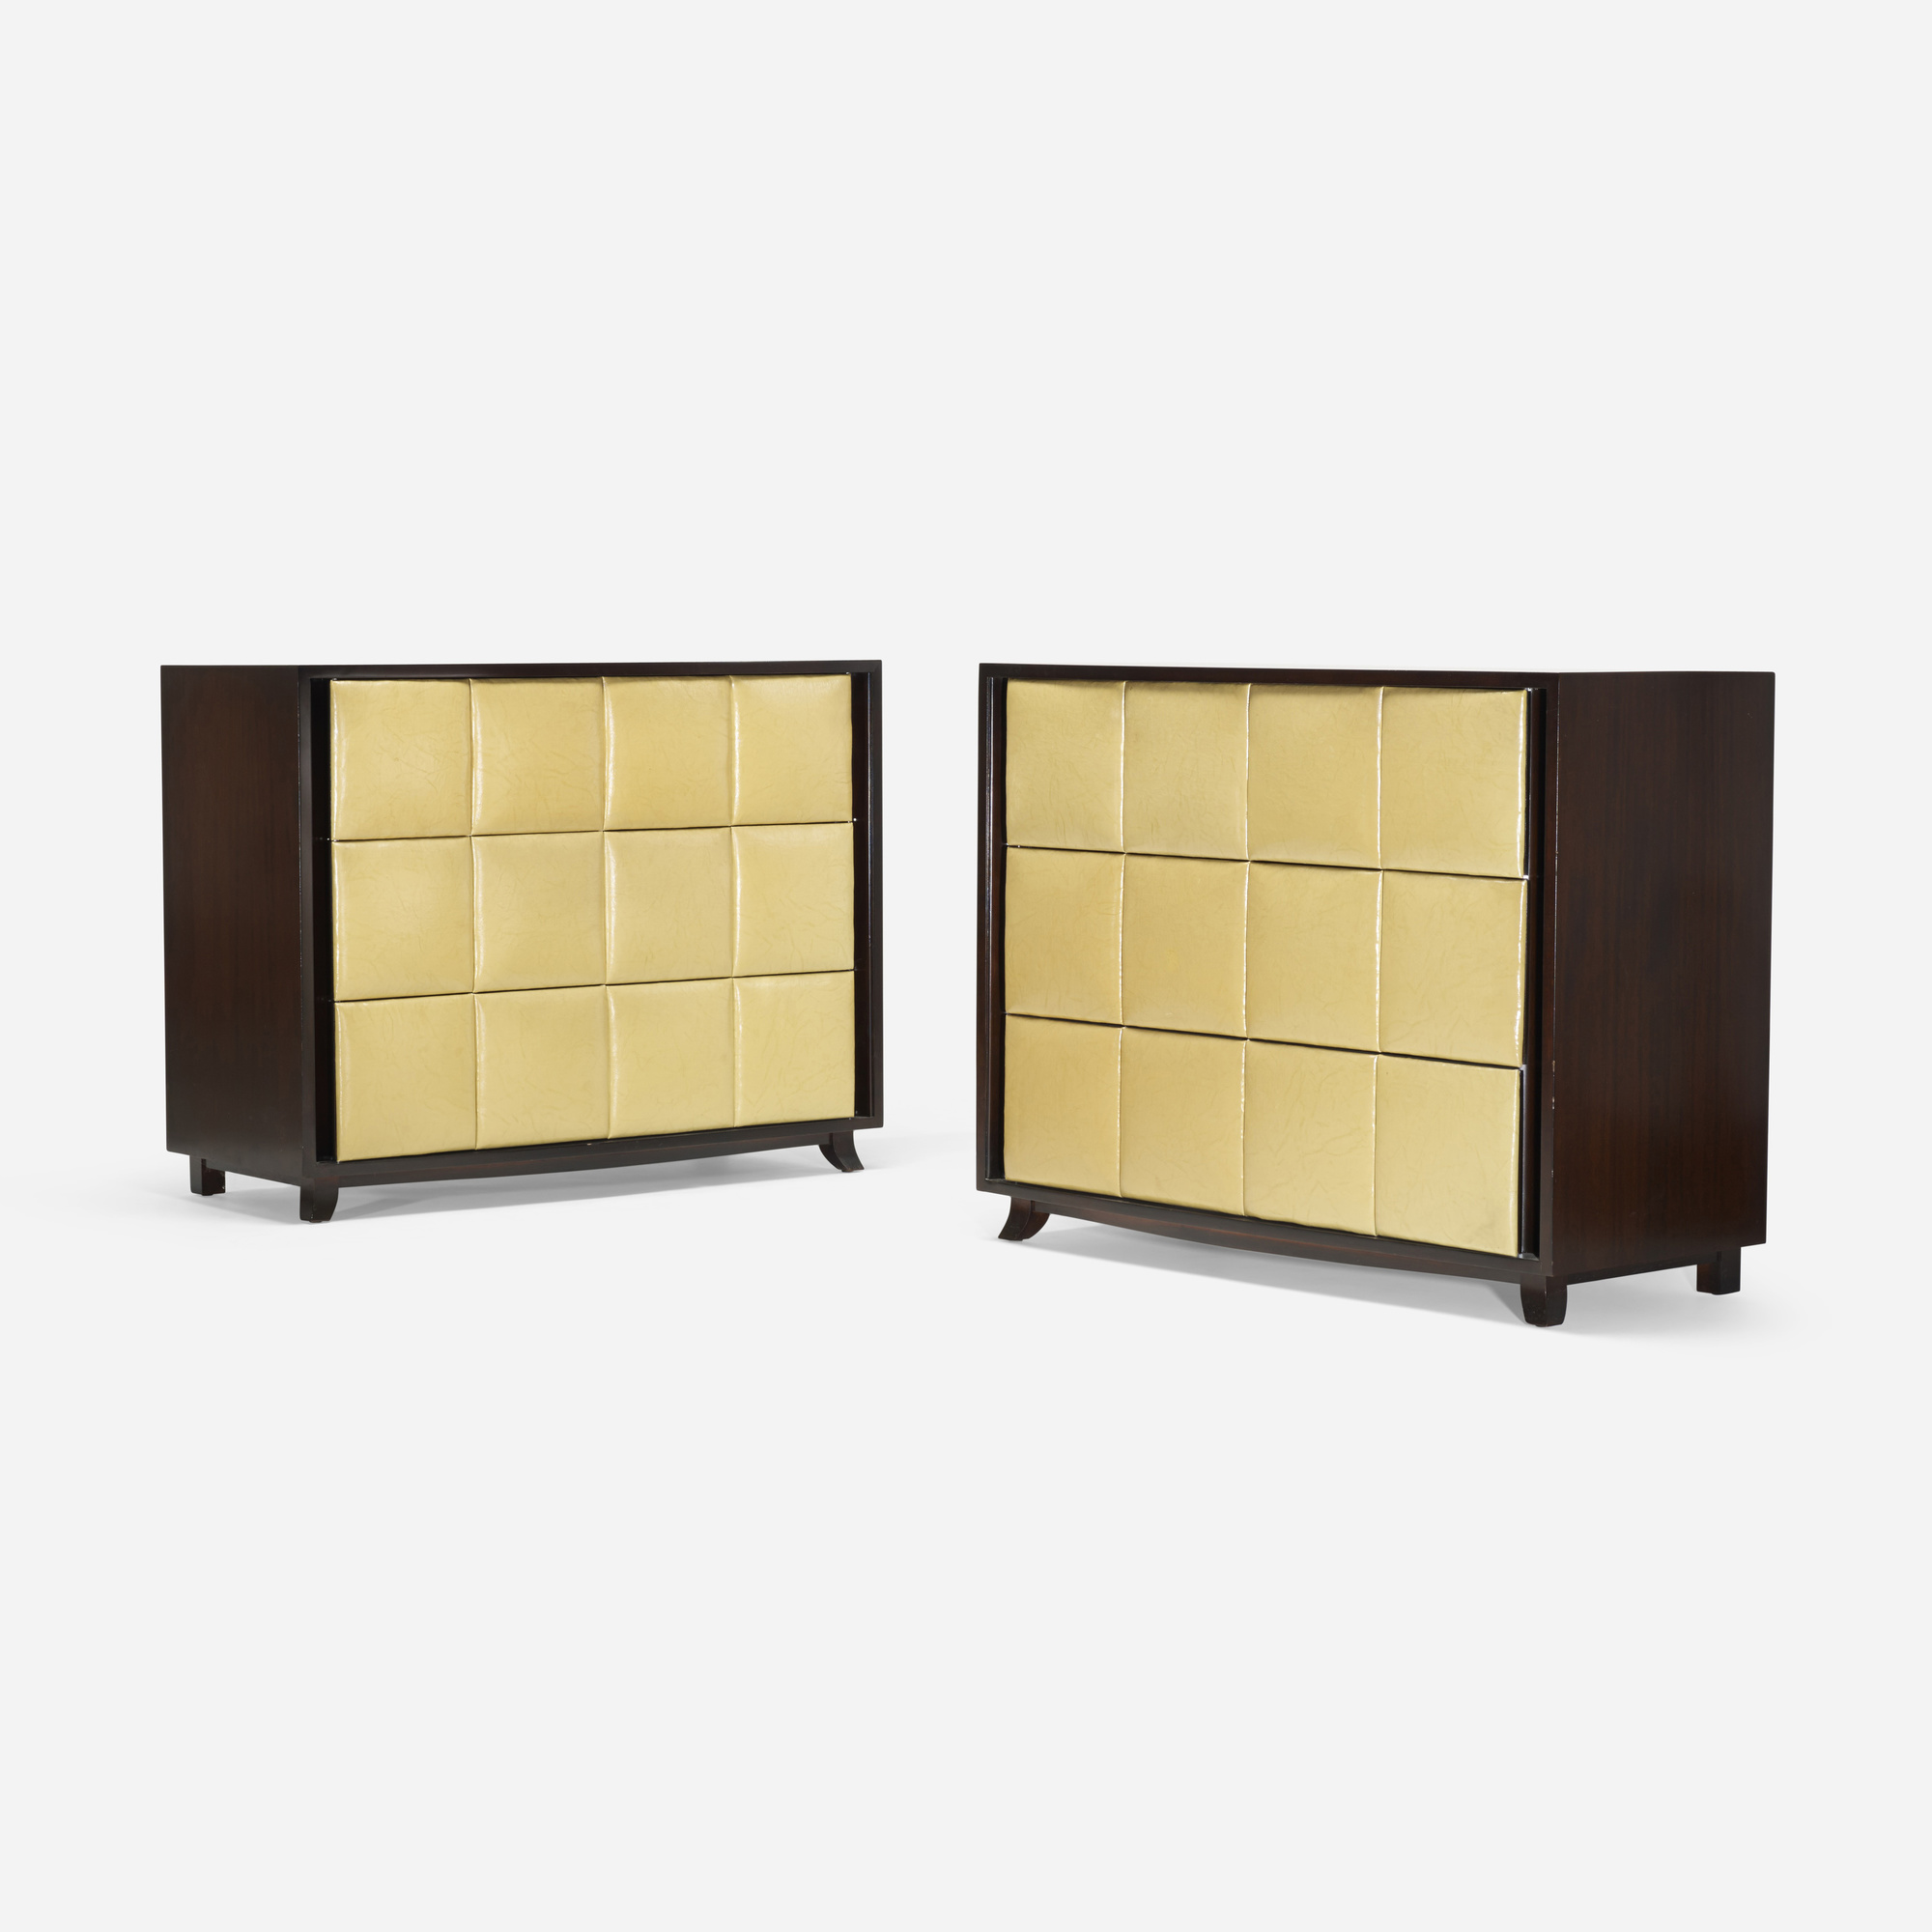 267: Gilbert Rohde / cabinets model 4140, pair (1 of 3)